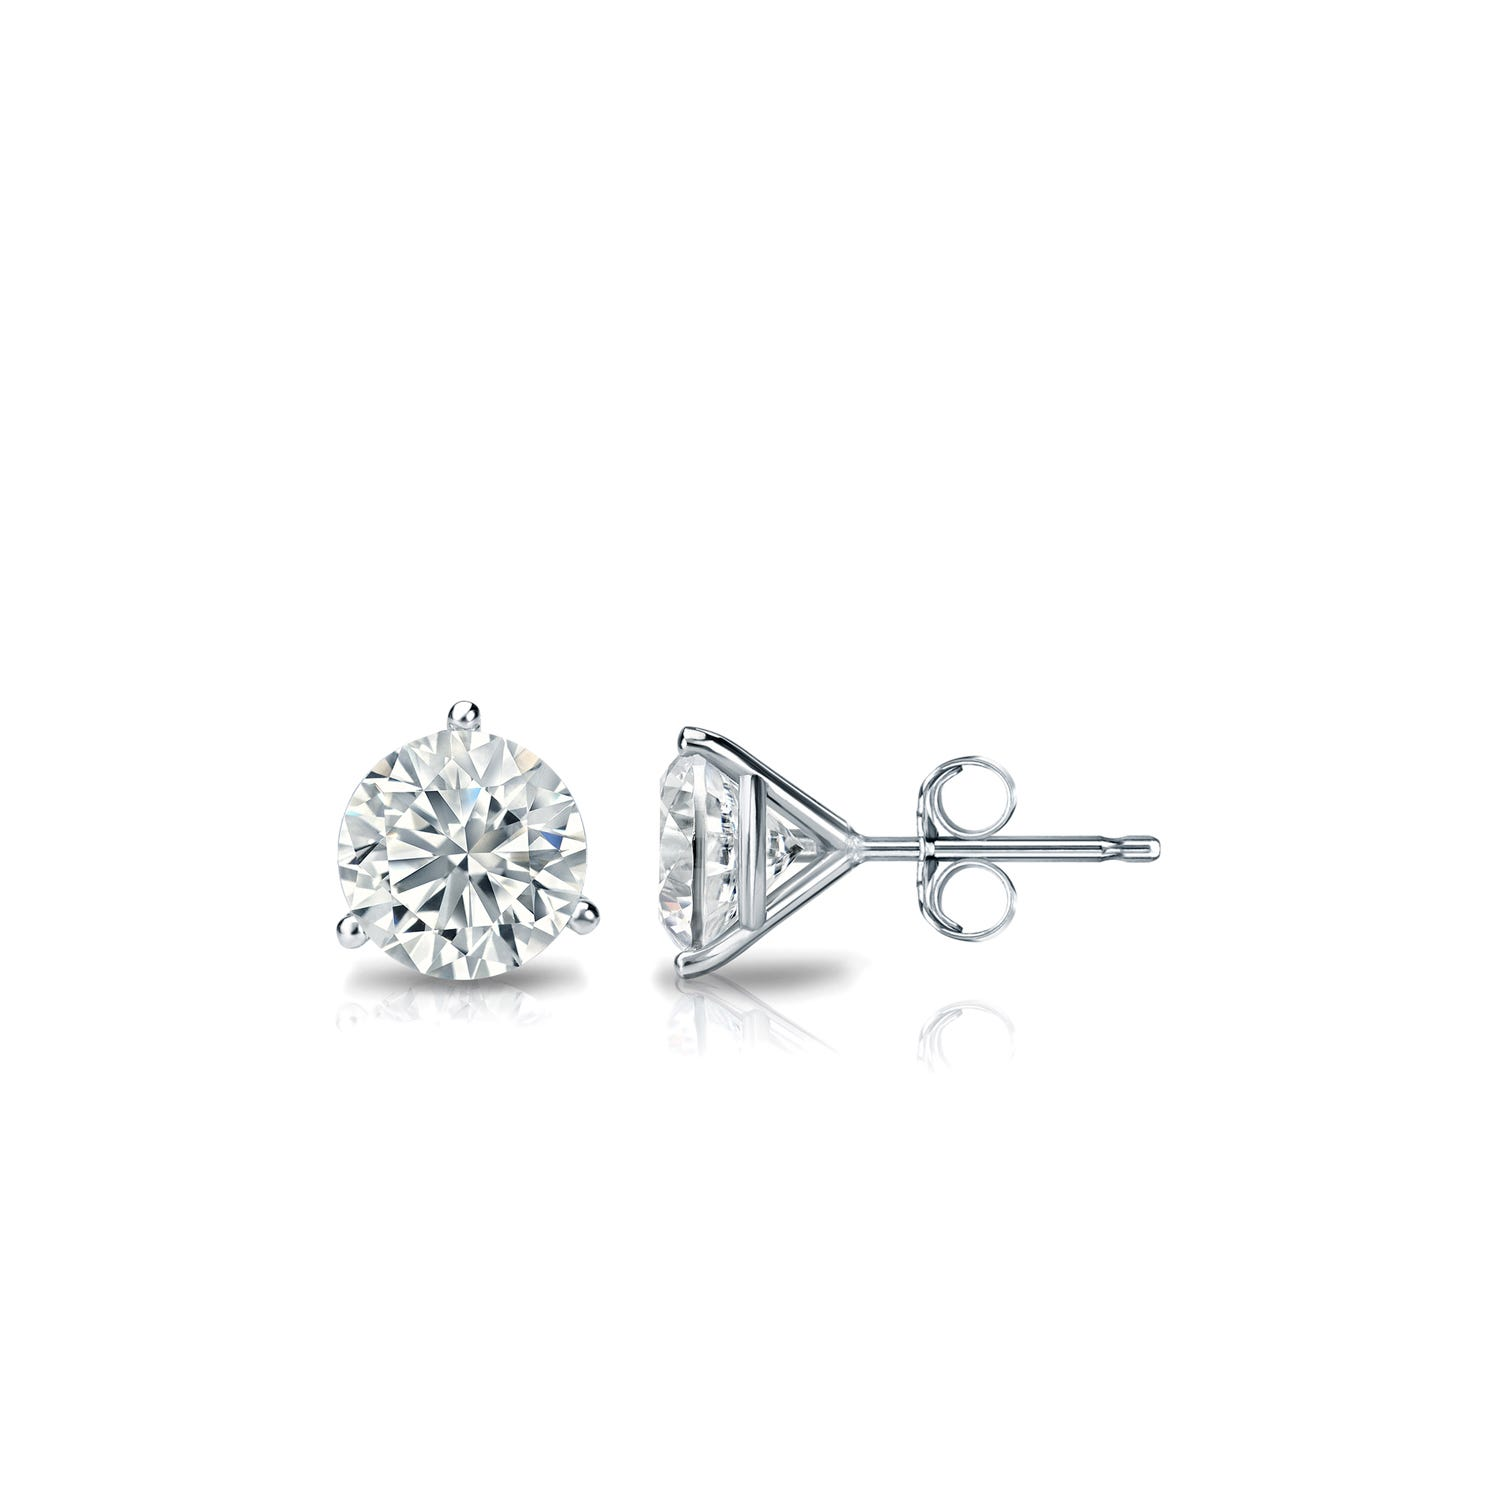 3/8 CTTW Round Diamond Solitaire Stud Earrings IJ VS2 in Platinum 3-Prong Setting